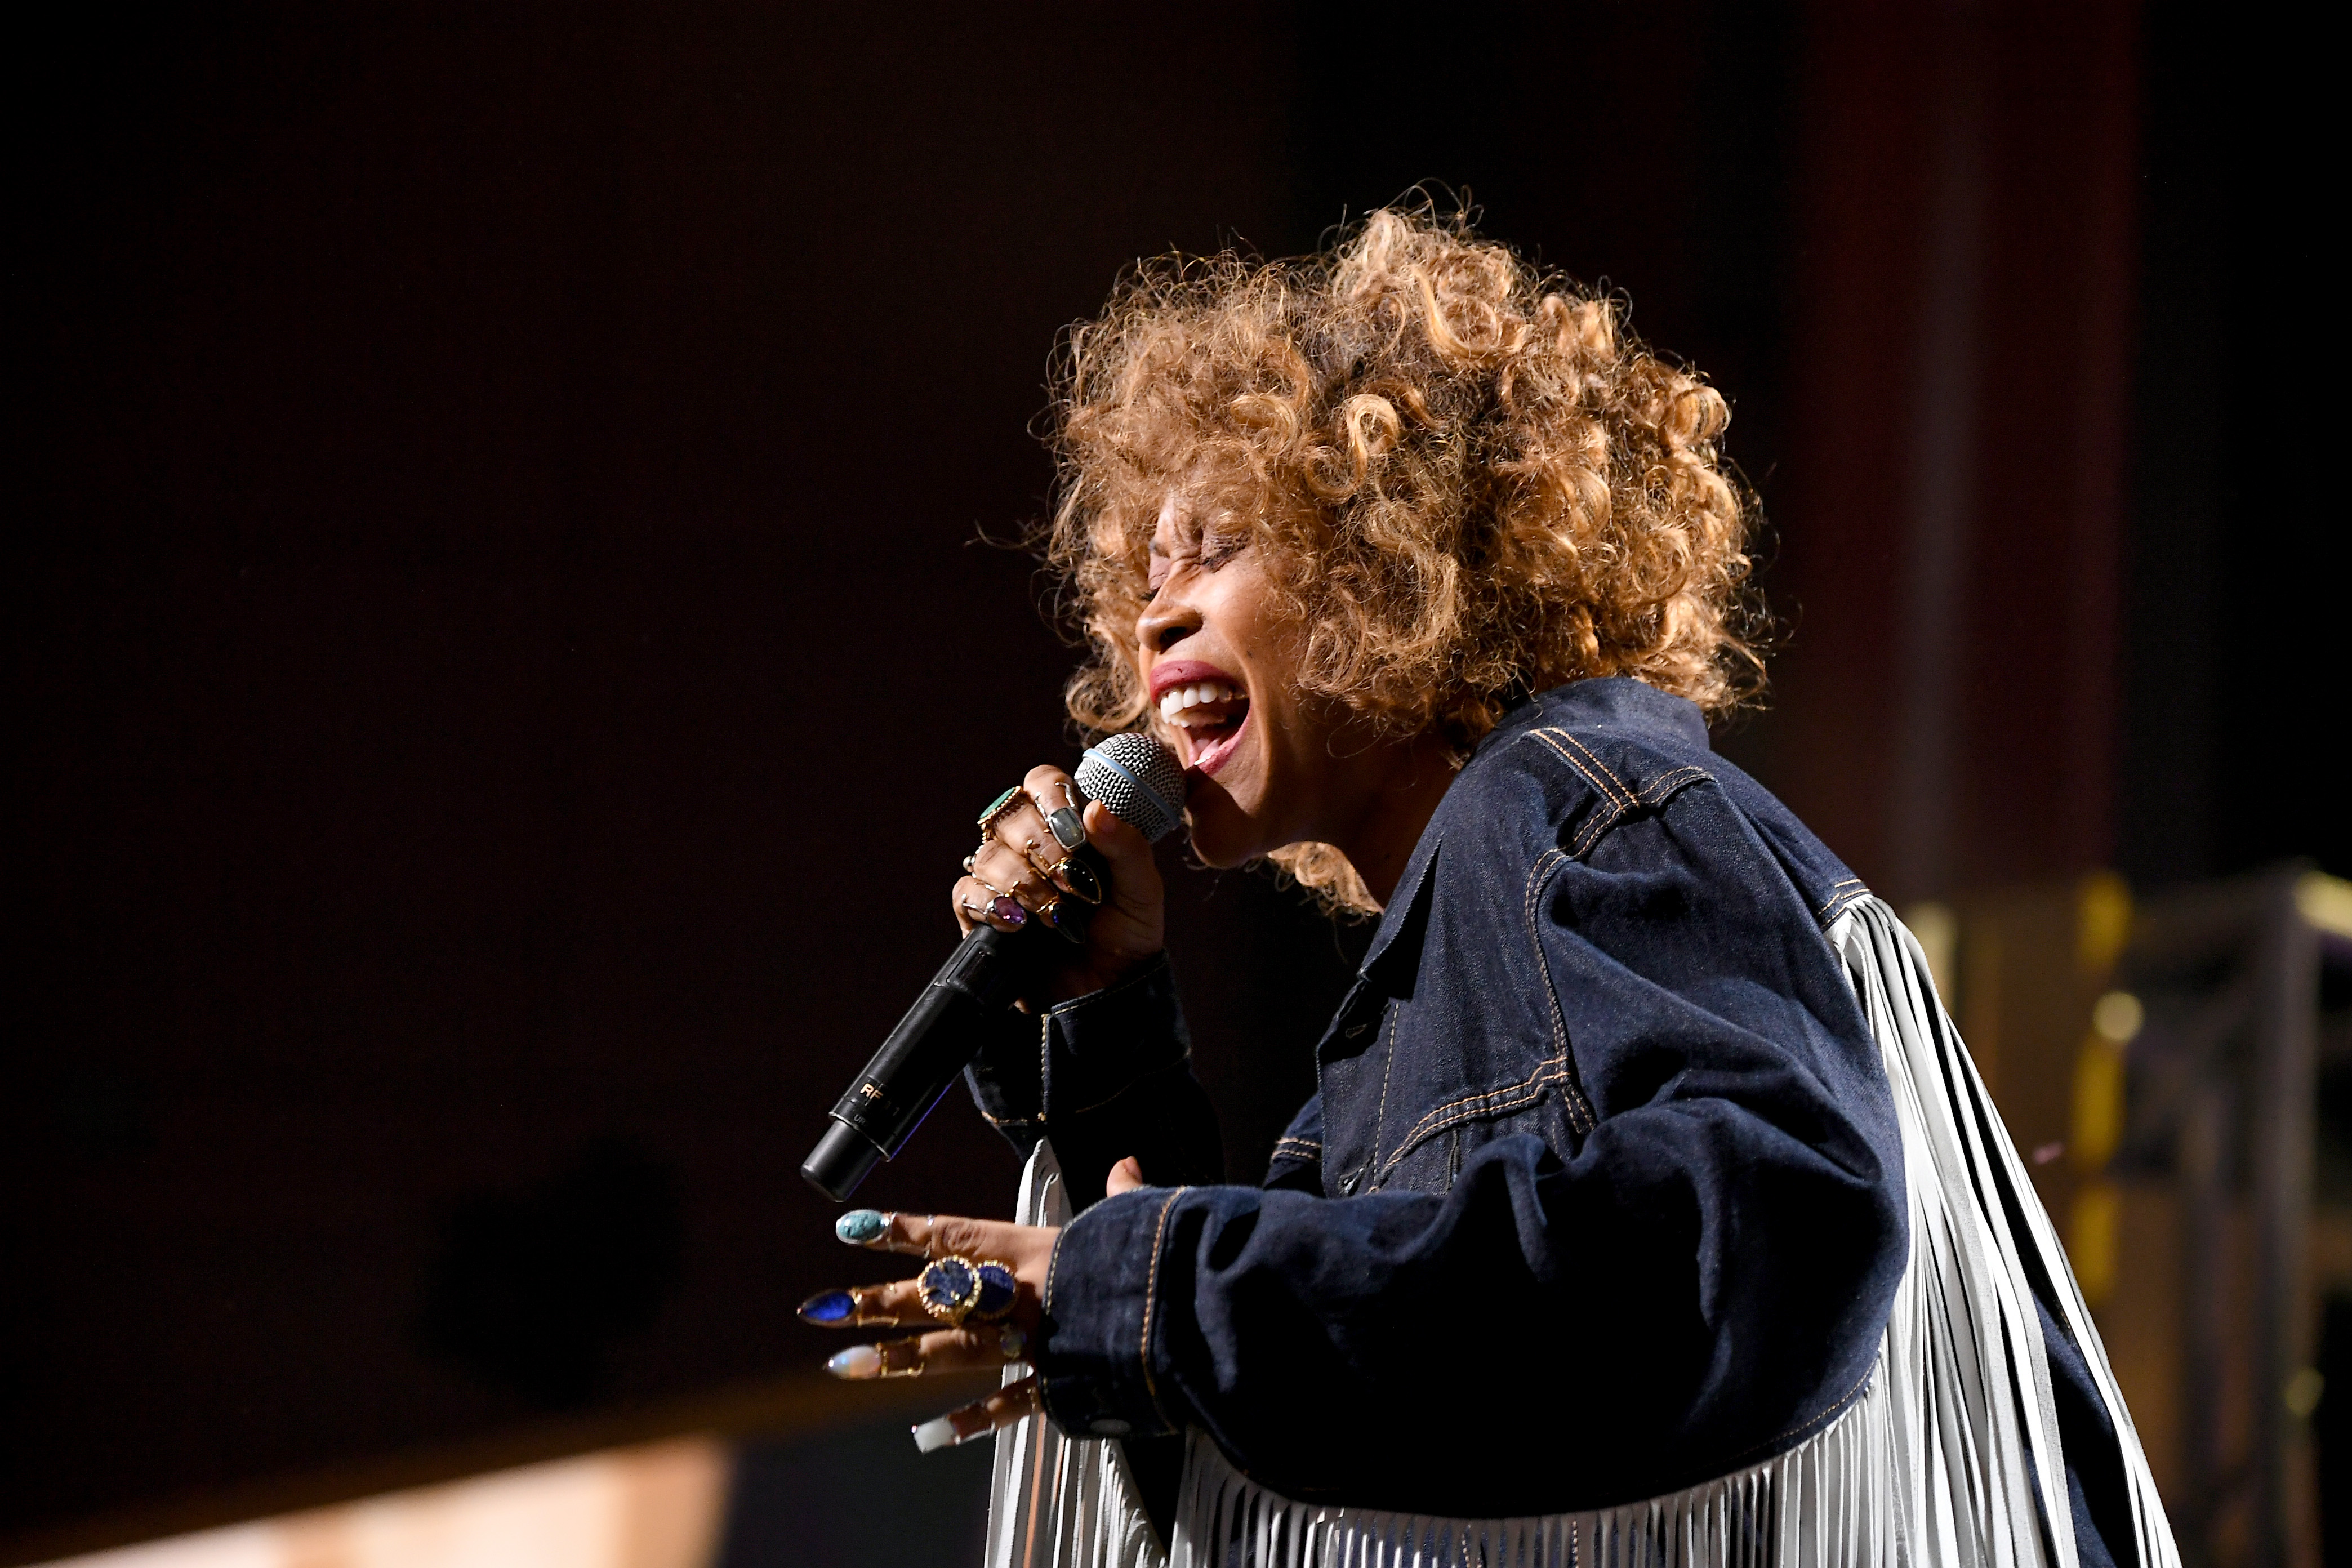 Erykah Badu performs onstage at Black Girls Rock 2019 Hosted By Niecy Nash at NJPAC on August 25, 2019 in Newark, New Jersey.